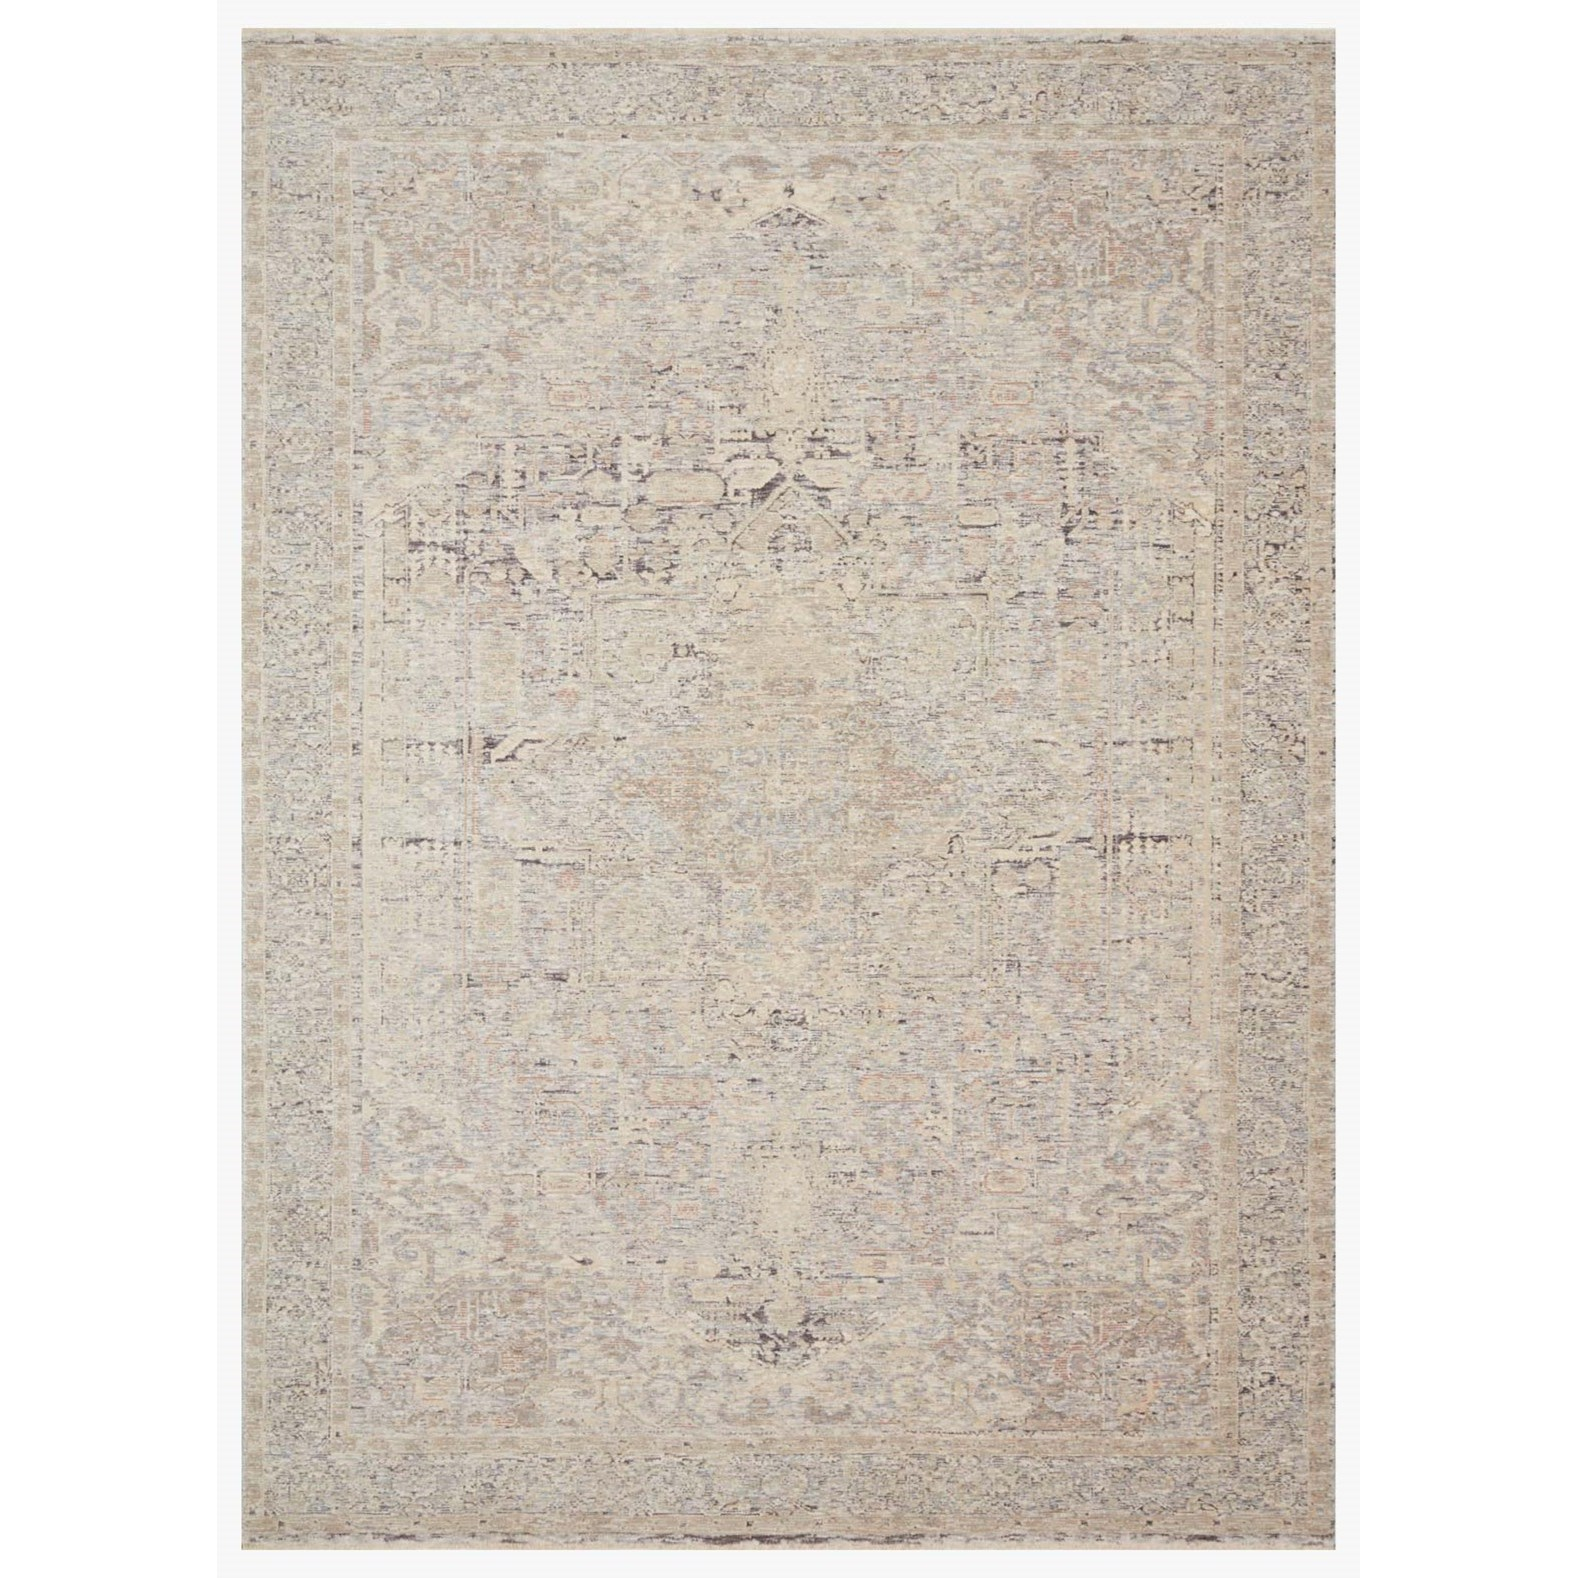 """Faye 7'10"""" x 10' Ivory / Multi Rug by Loloi Rugs at Virginia Furniture Market"""